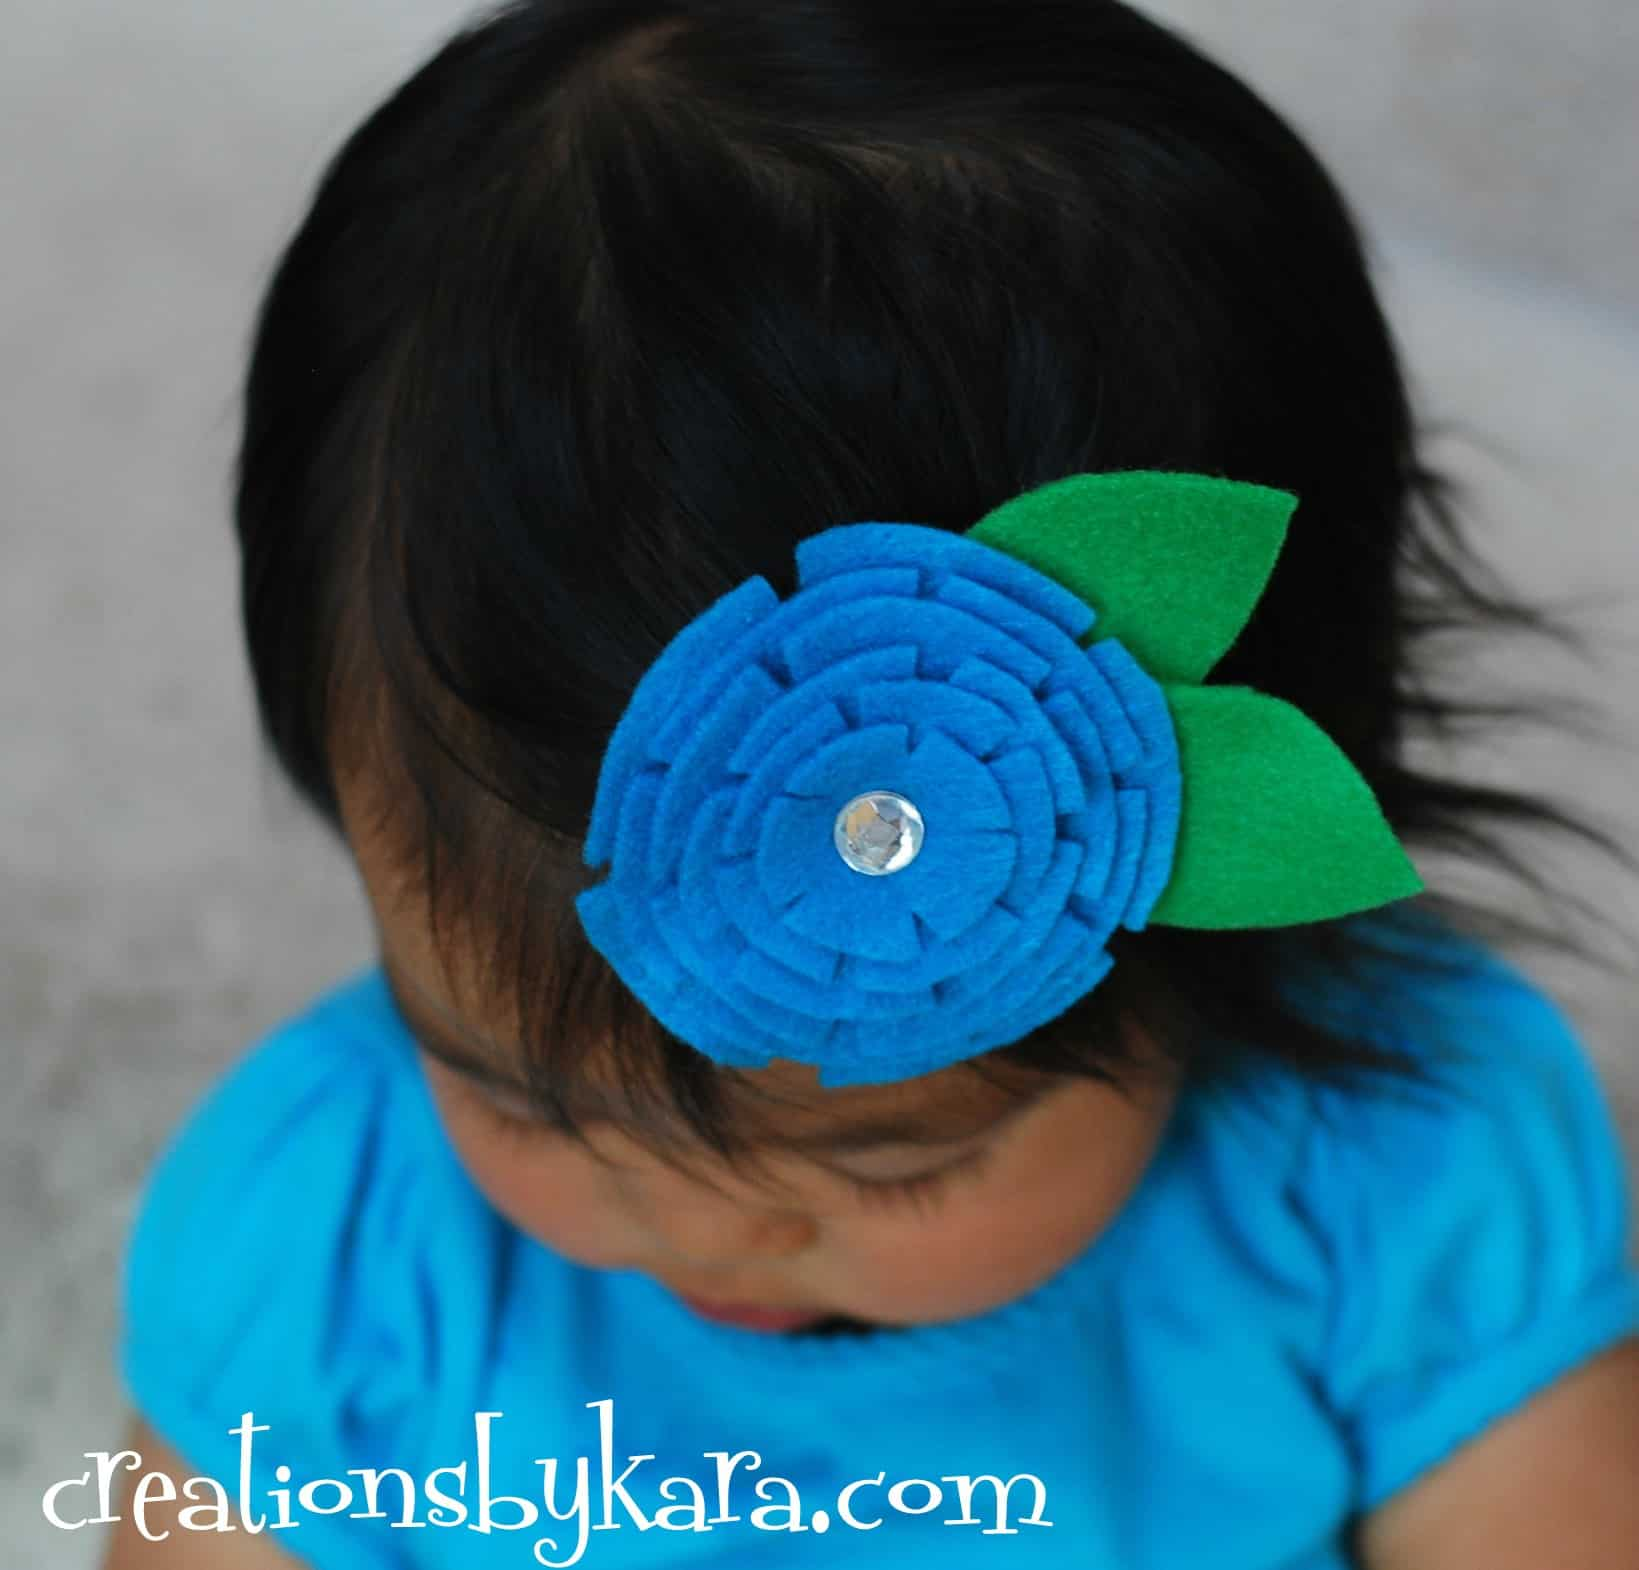 hair clip - Creations by Kara